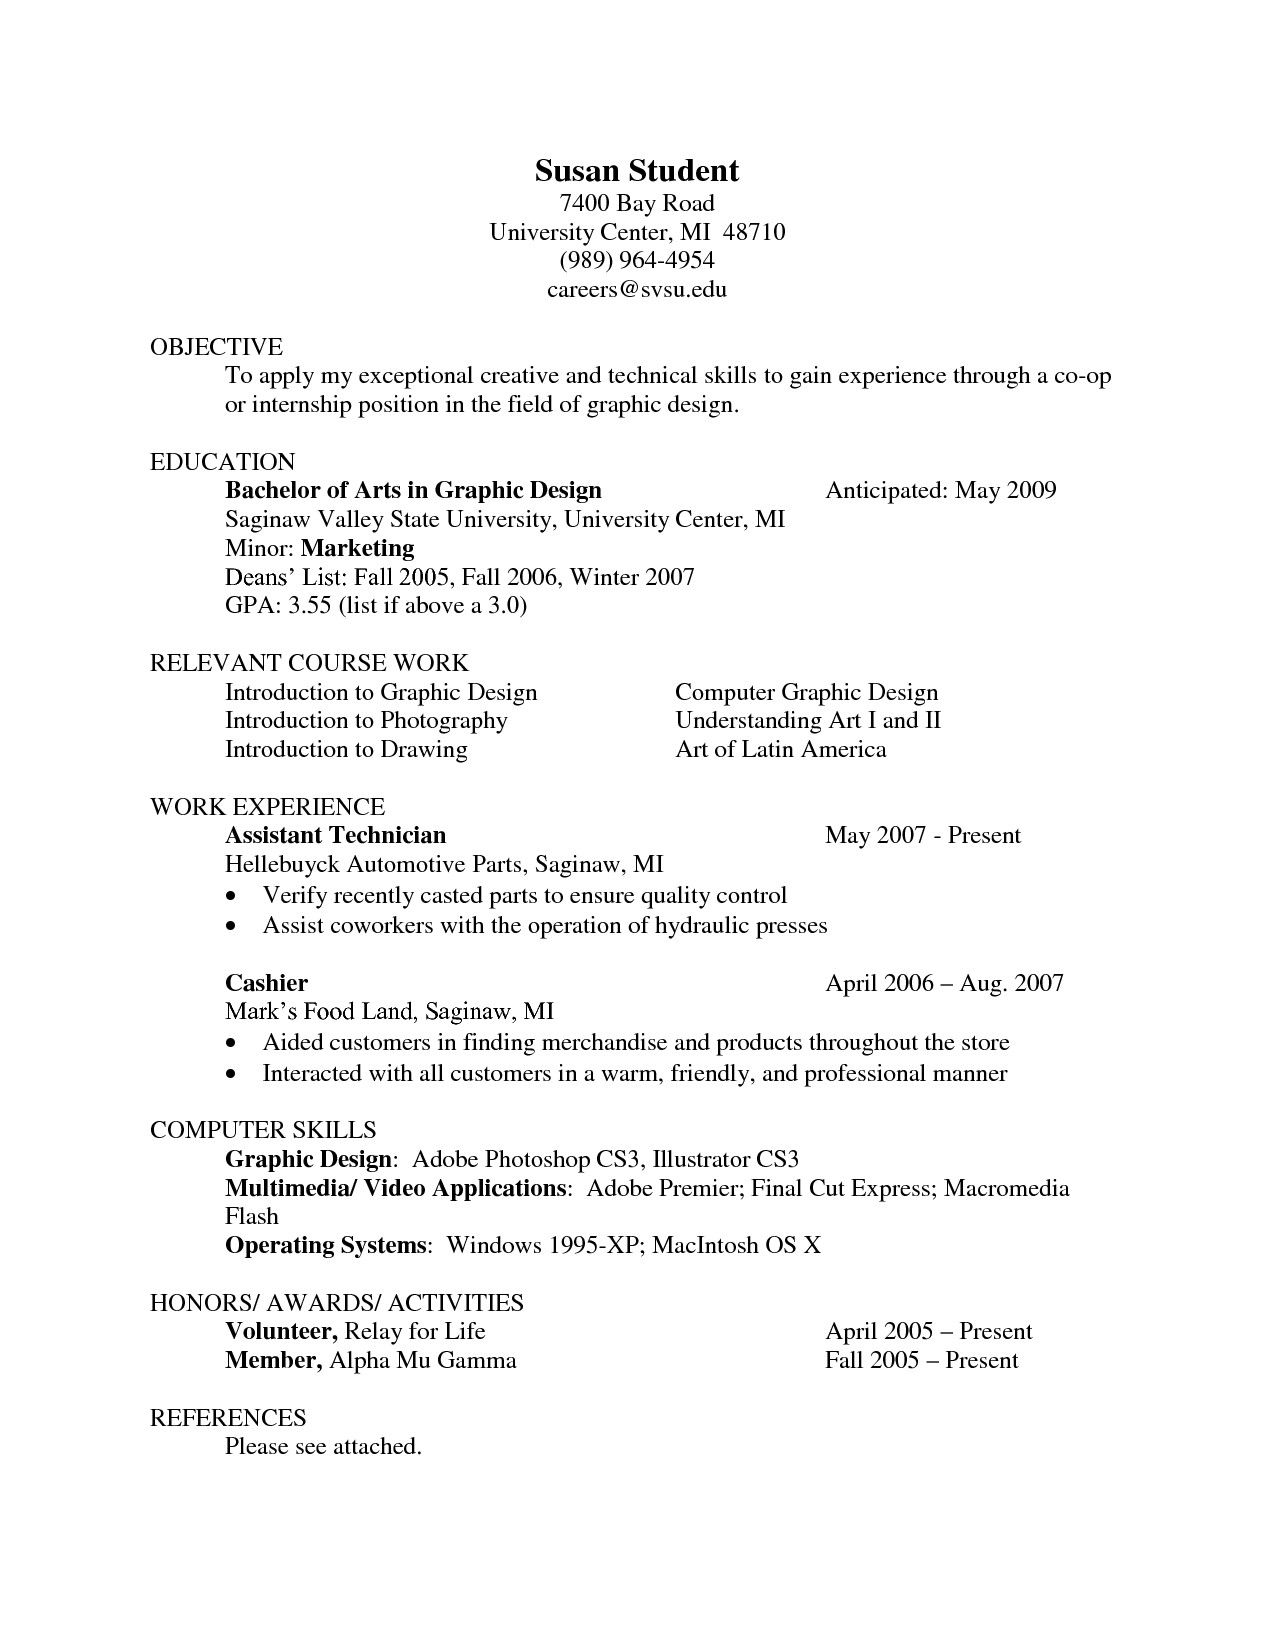 Resume Format With References Resume Examples References  Pinterest  Resume Examples